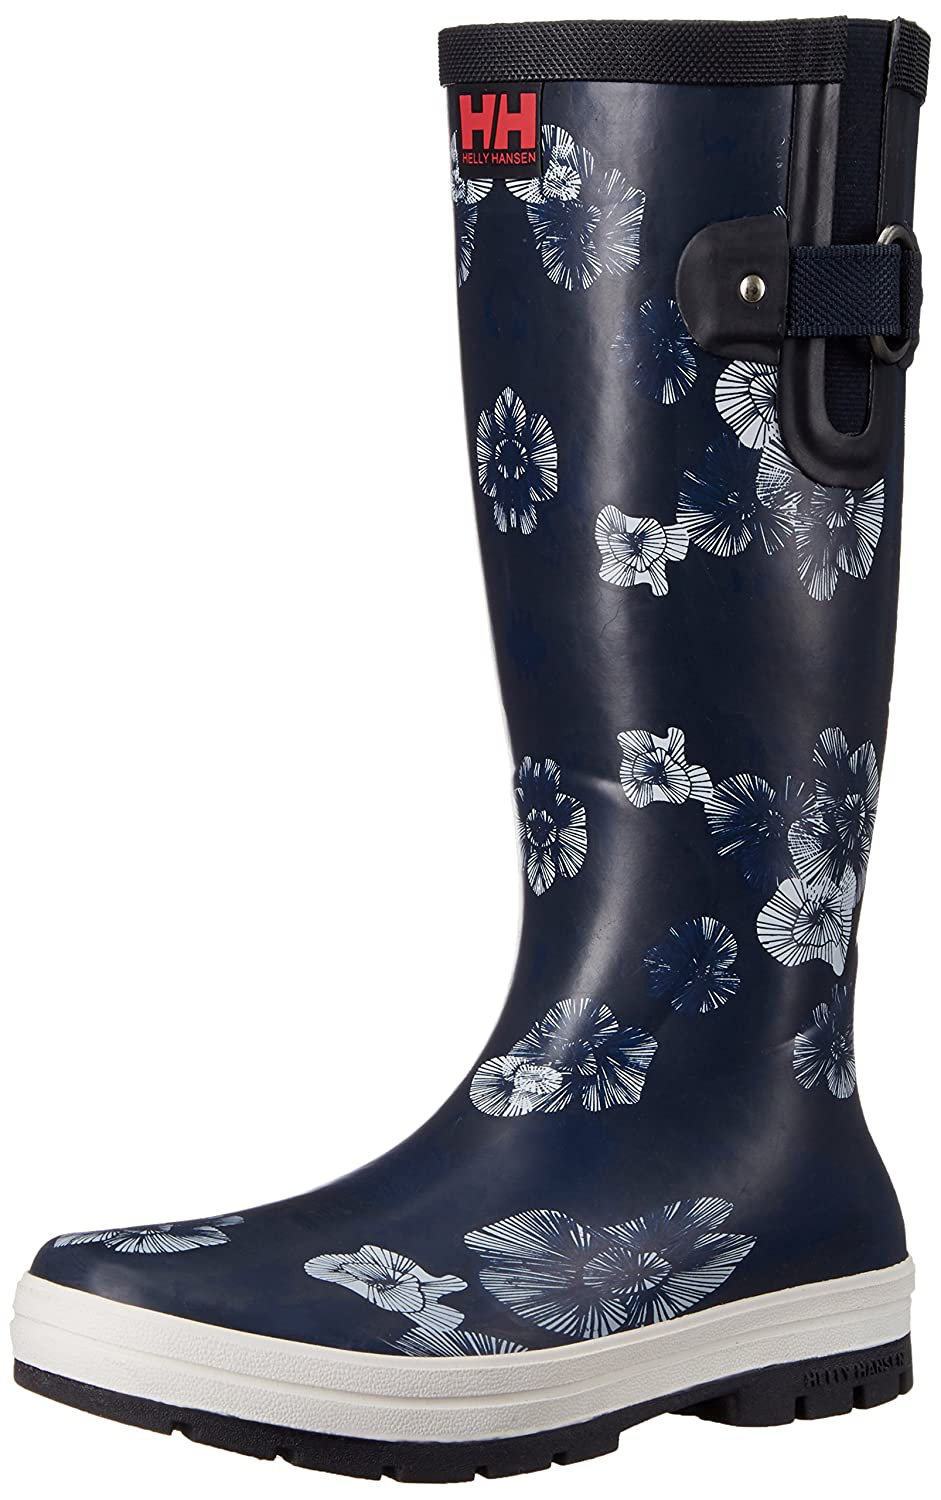 Helly Hansen Women's Veierland 2 Graphic Rain Boot B01GNSI41O 11 B(M) US|Navy/Evening Blue/Off White